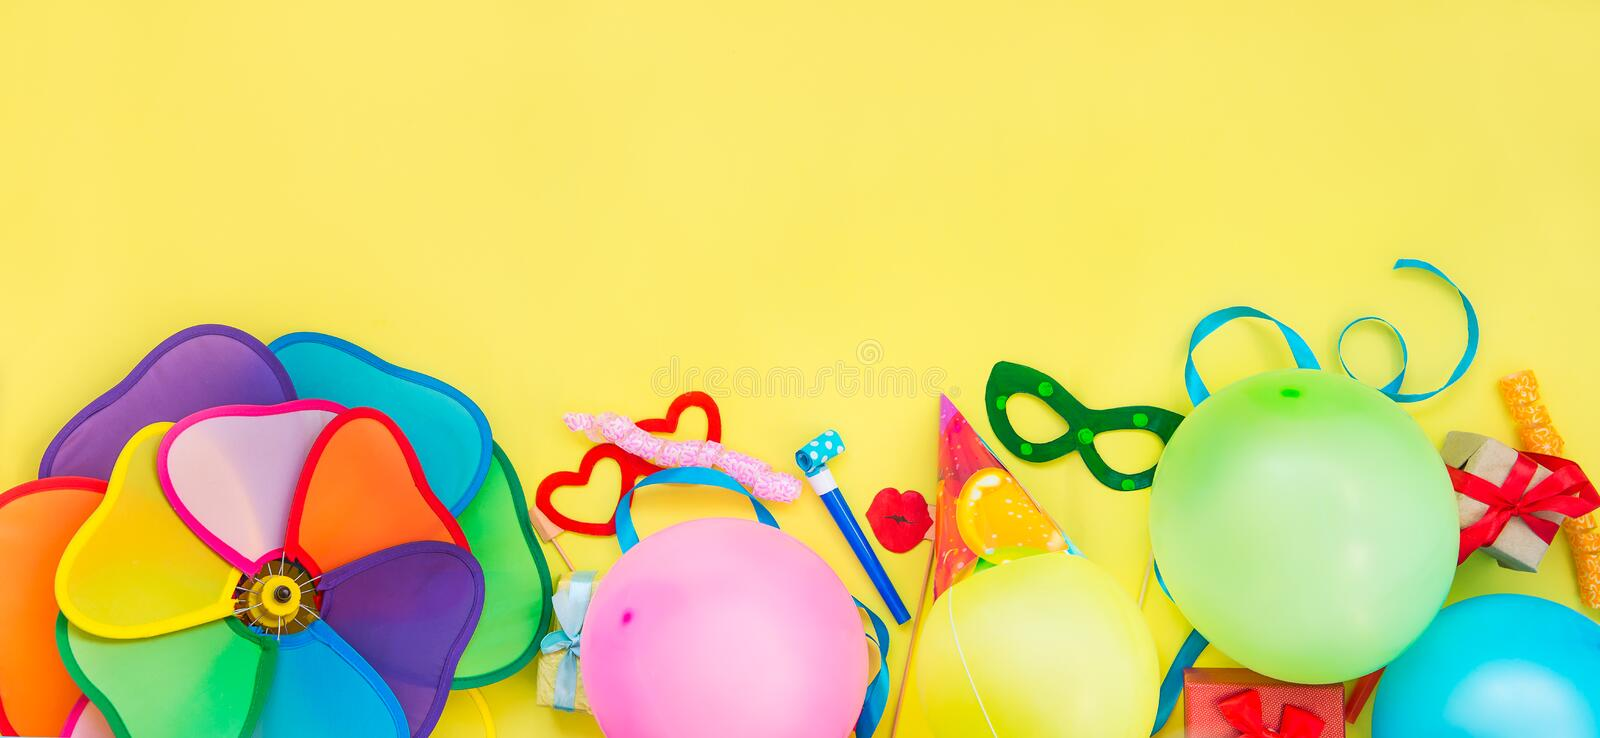 Top view bright party tools and decoration - baloons, funny carnival masks, festive tinsel on yellow background. Happy birthday gr stock photography